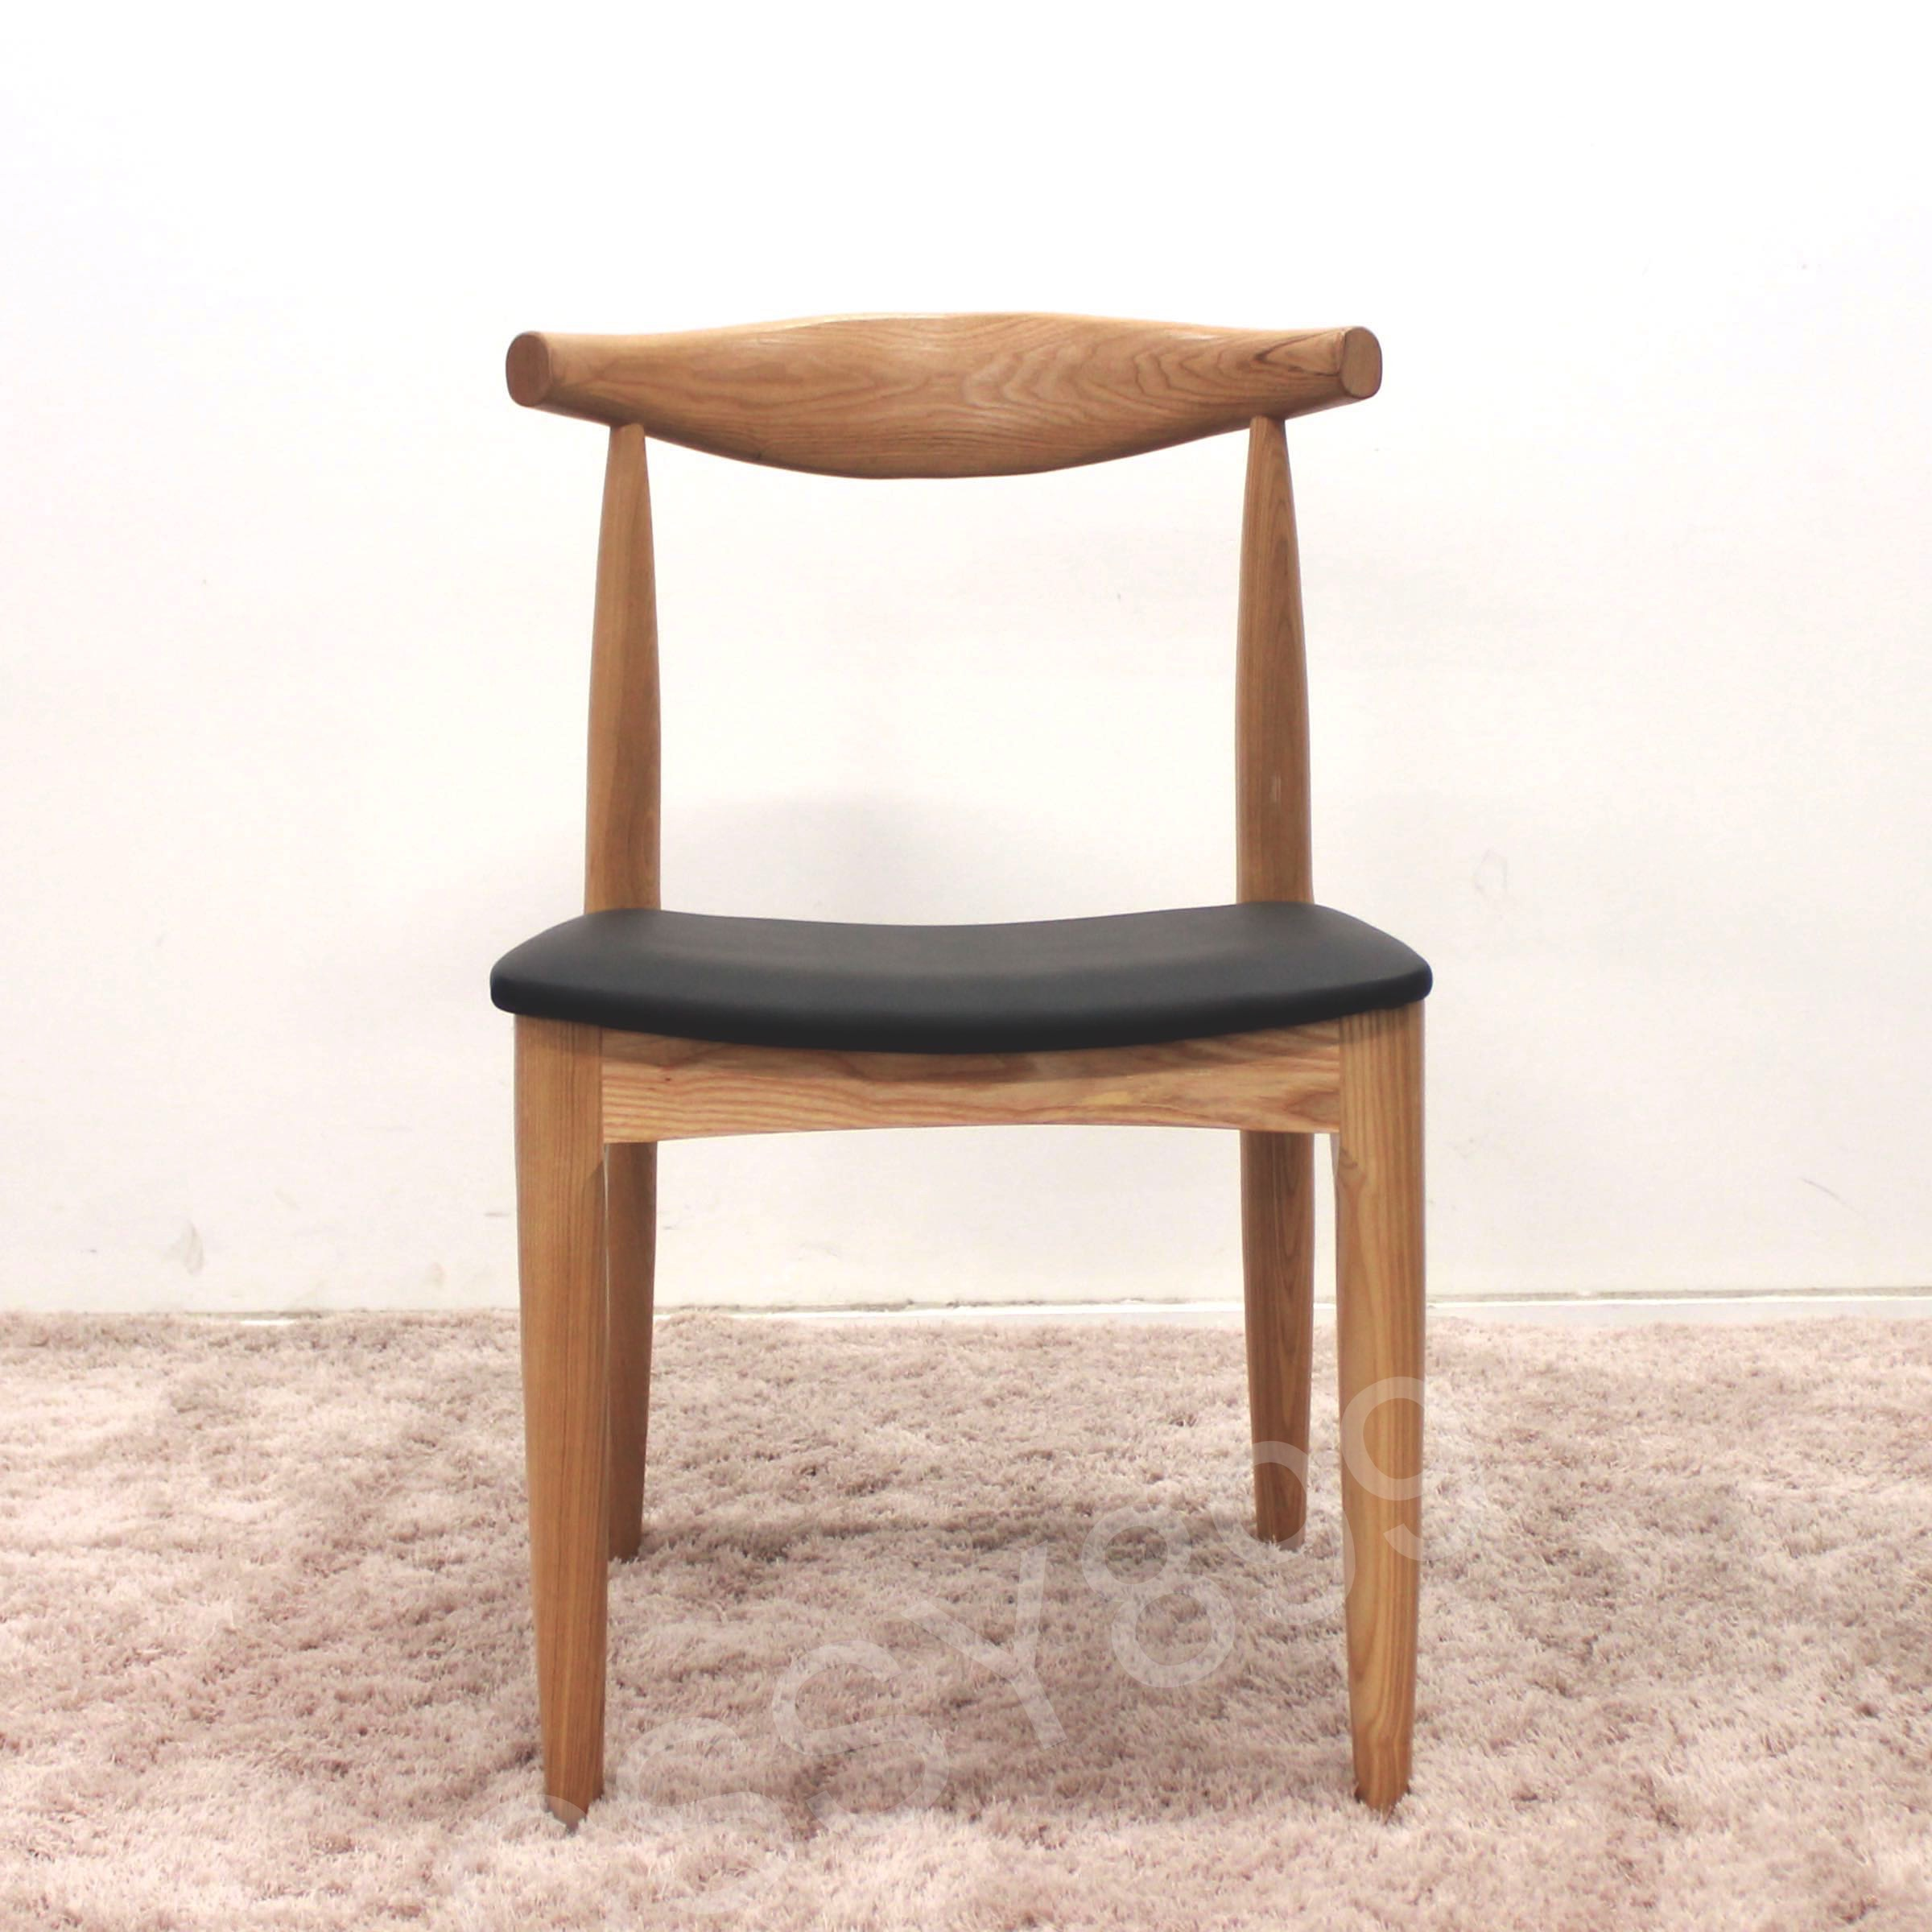 2 x new replica hans wegner chair elbow chair designer for Imitation designer chairs